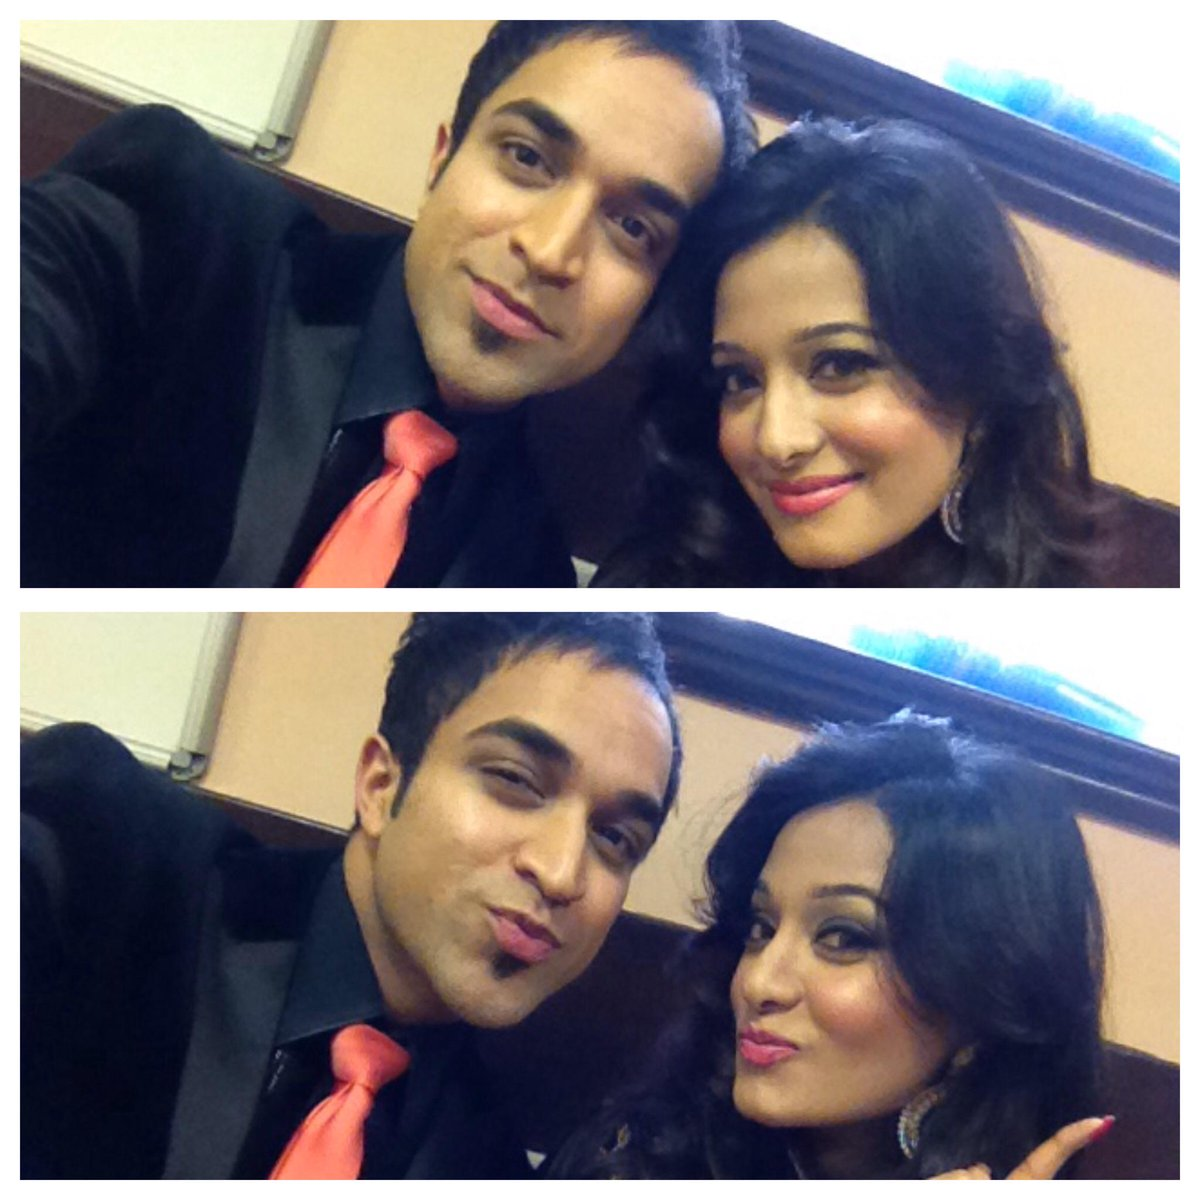 Lots of u hav been asking for more photos of me & the beautiful @preetikatweets backstage @SabrasRadio so this is 4u! http://t.co/1kPcOop3rA